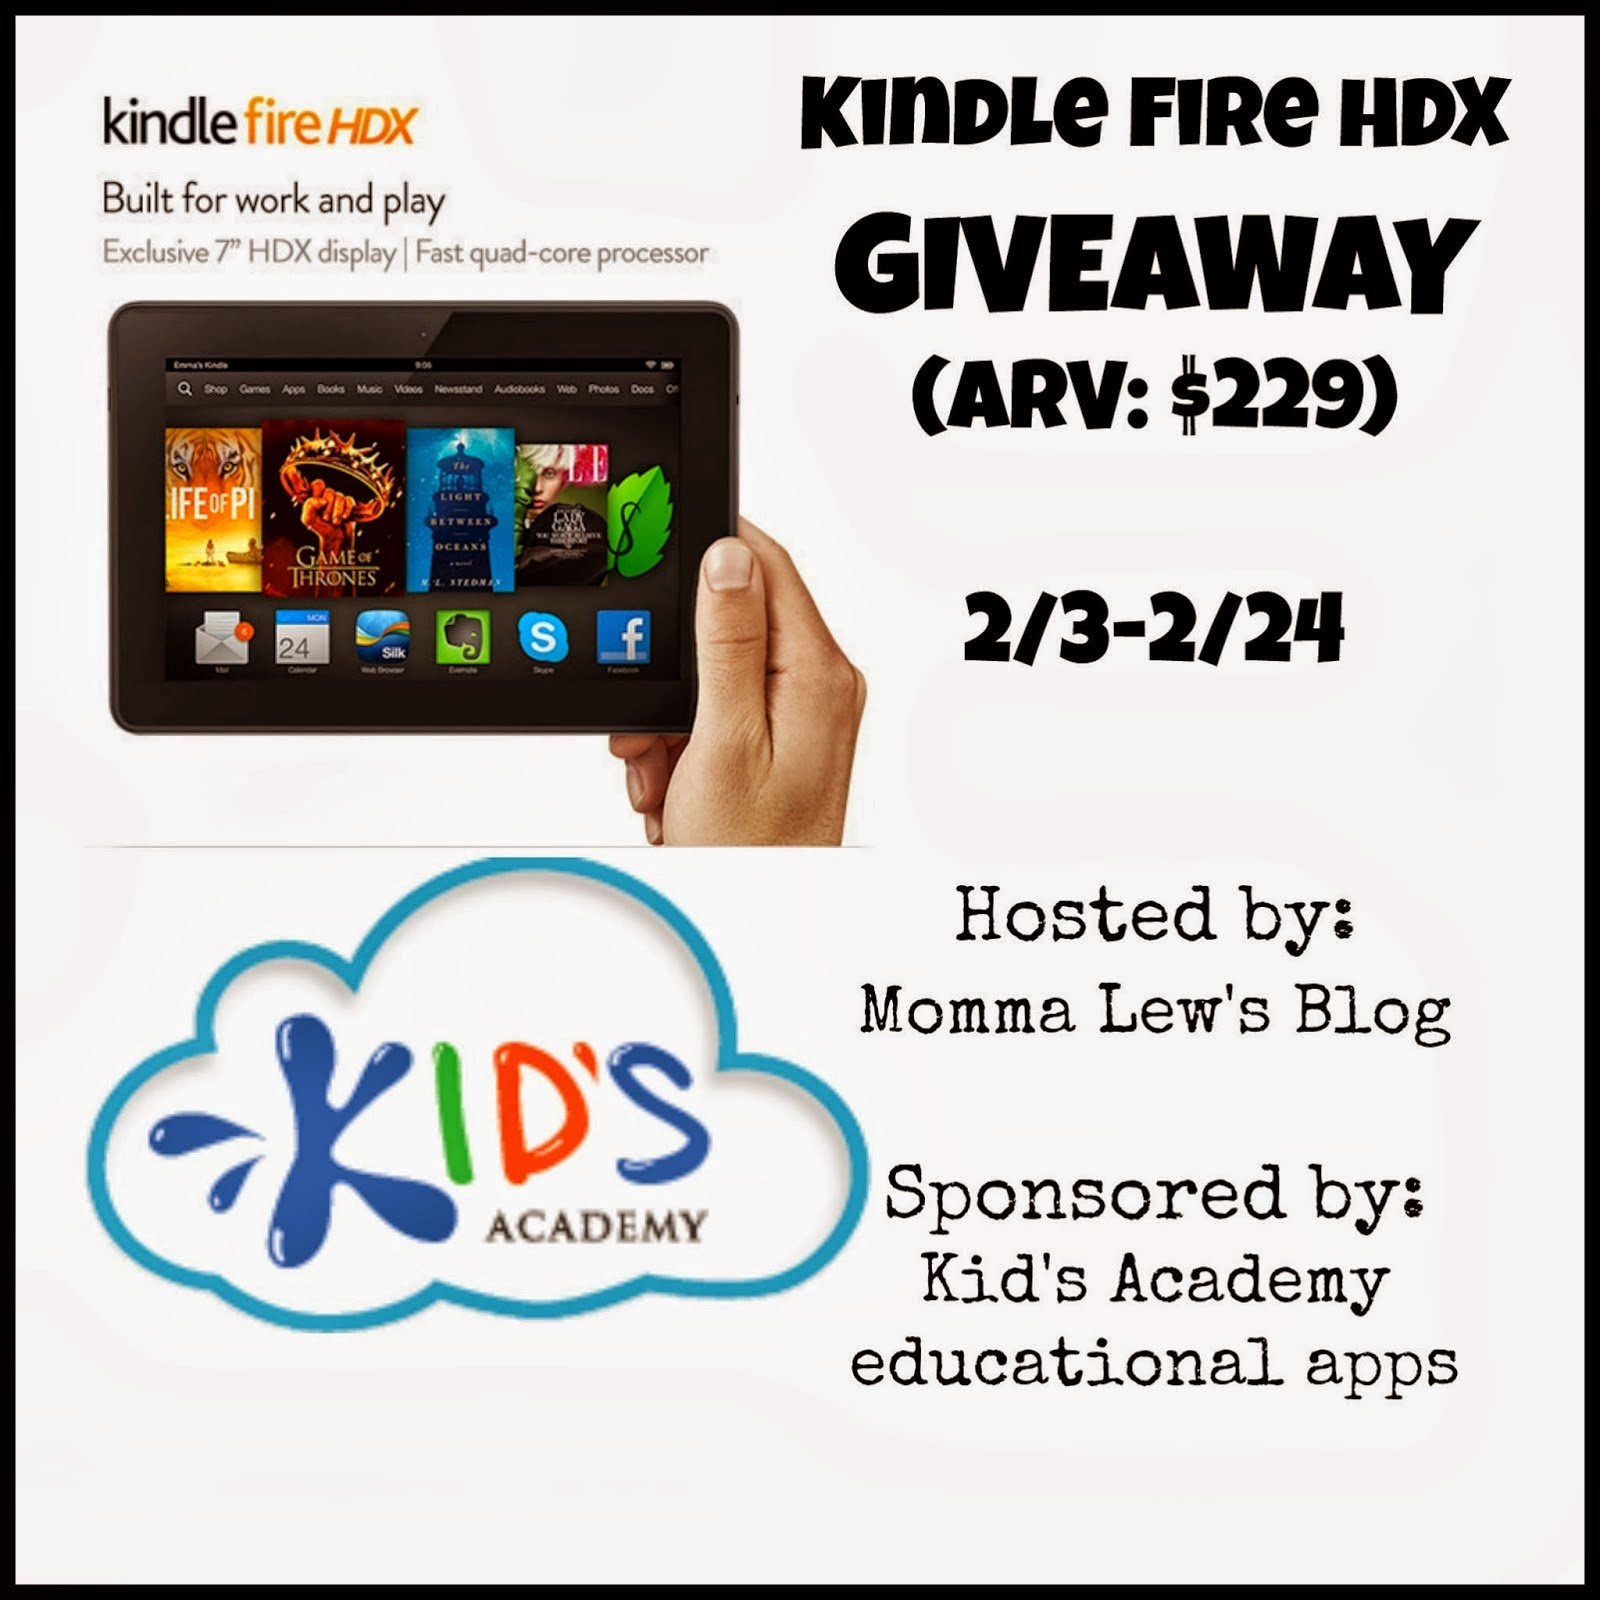 Enter to win a Kindle Fire HDX. ARV $229. US-only. Ends 2/14.